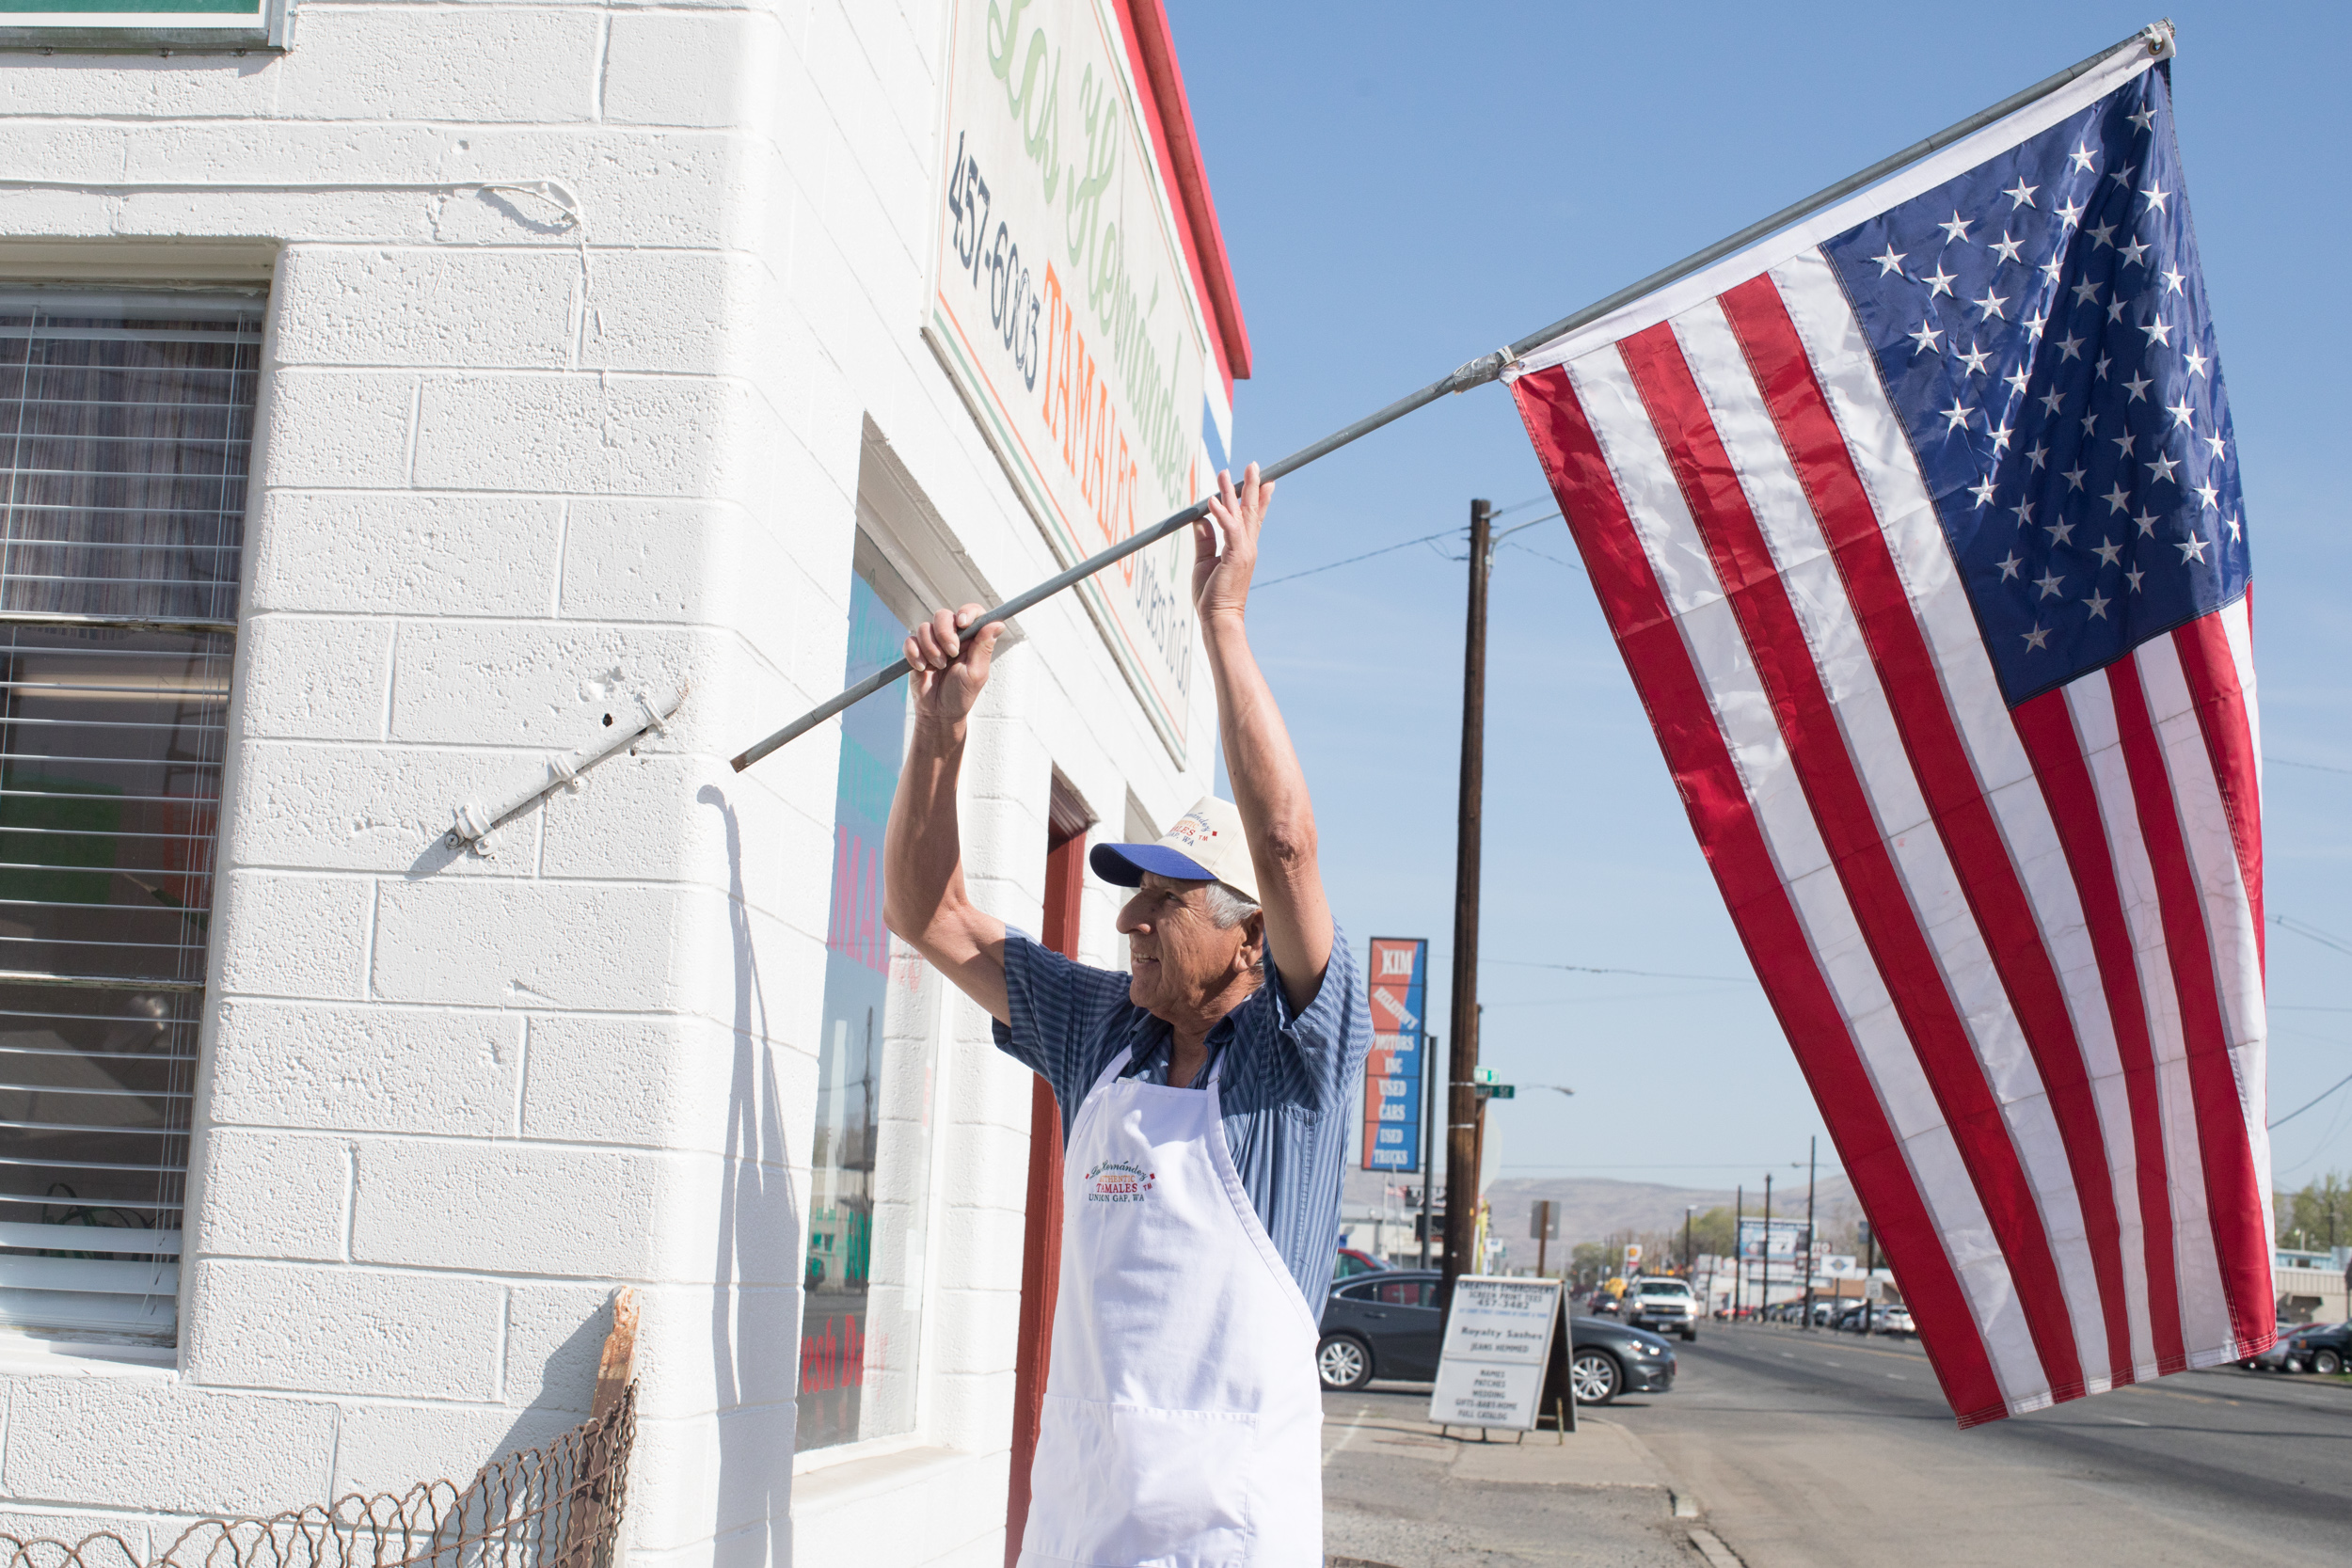 Owner Felipe Hernández hangs an American flag on the exterior of Los Hernández Tamales in Union Gap, Washington, opening the small, award-winning restaurant for yet another day.